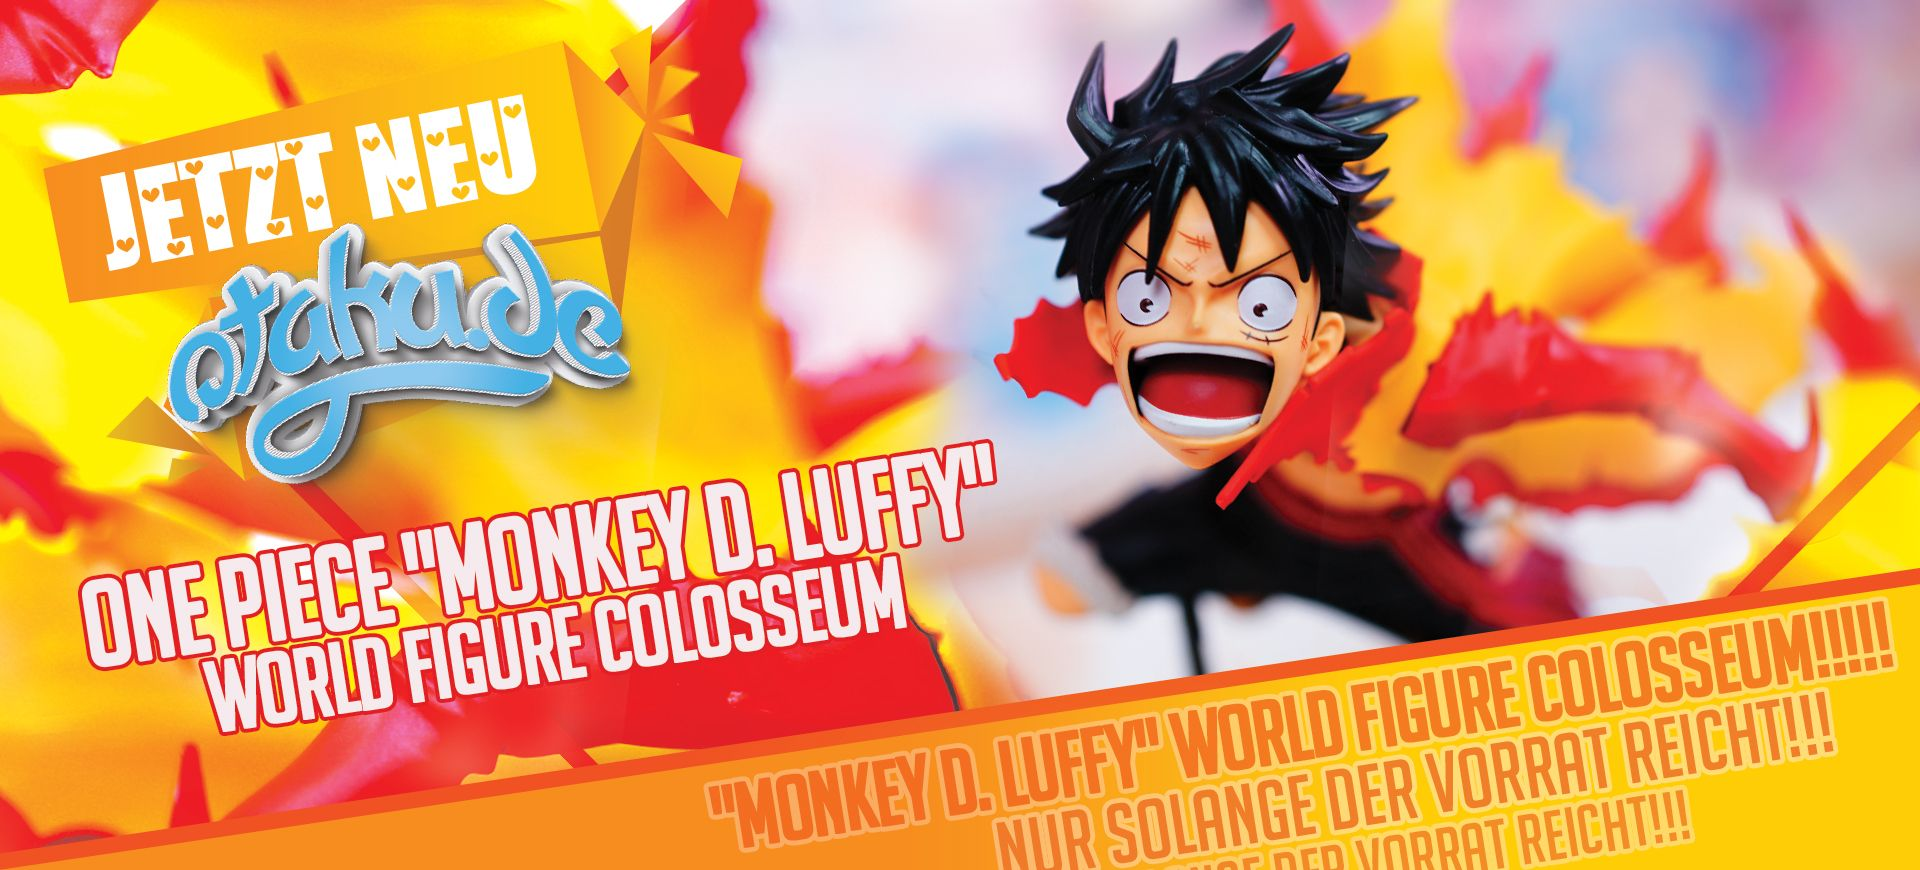 One Piece Monkey D. Luffy World Figure Colosseum Figur